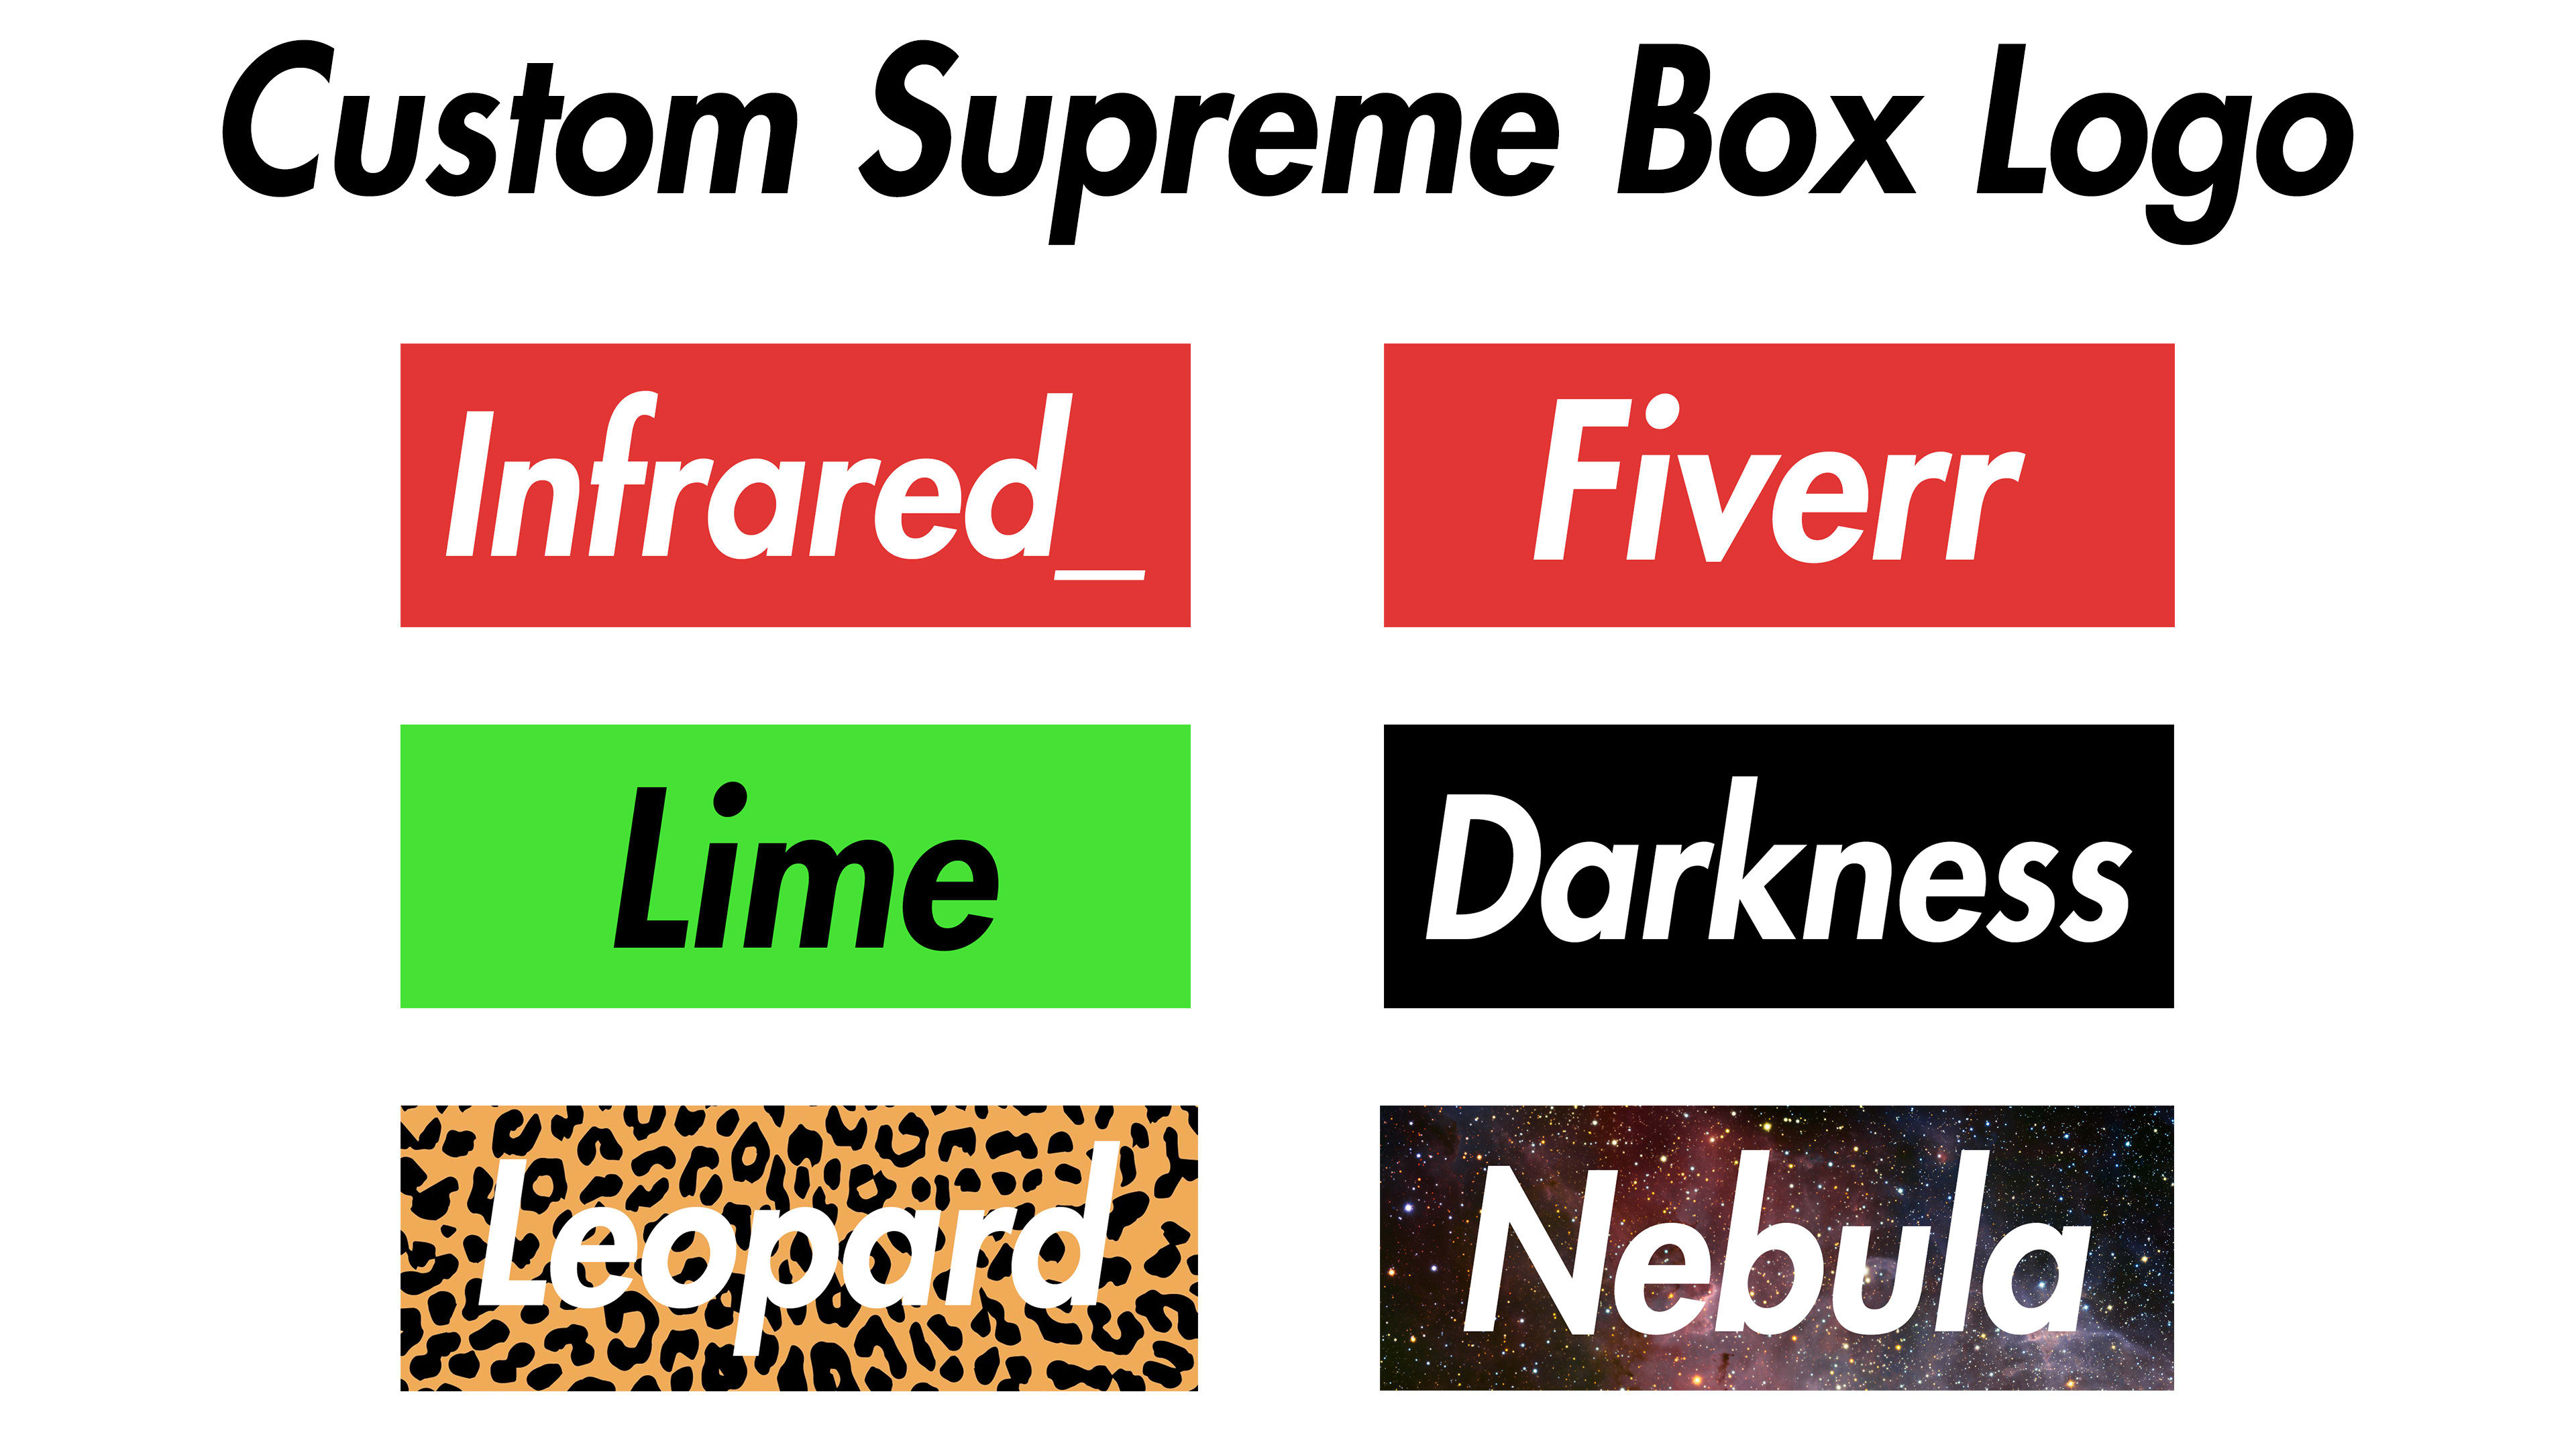 Make A Print Ready Custom Supreme Box Logo In Under 24 Hours By